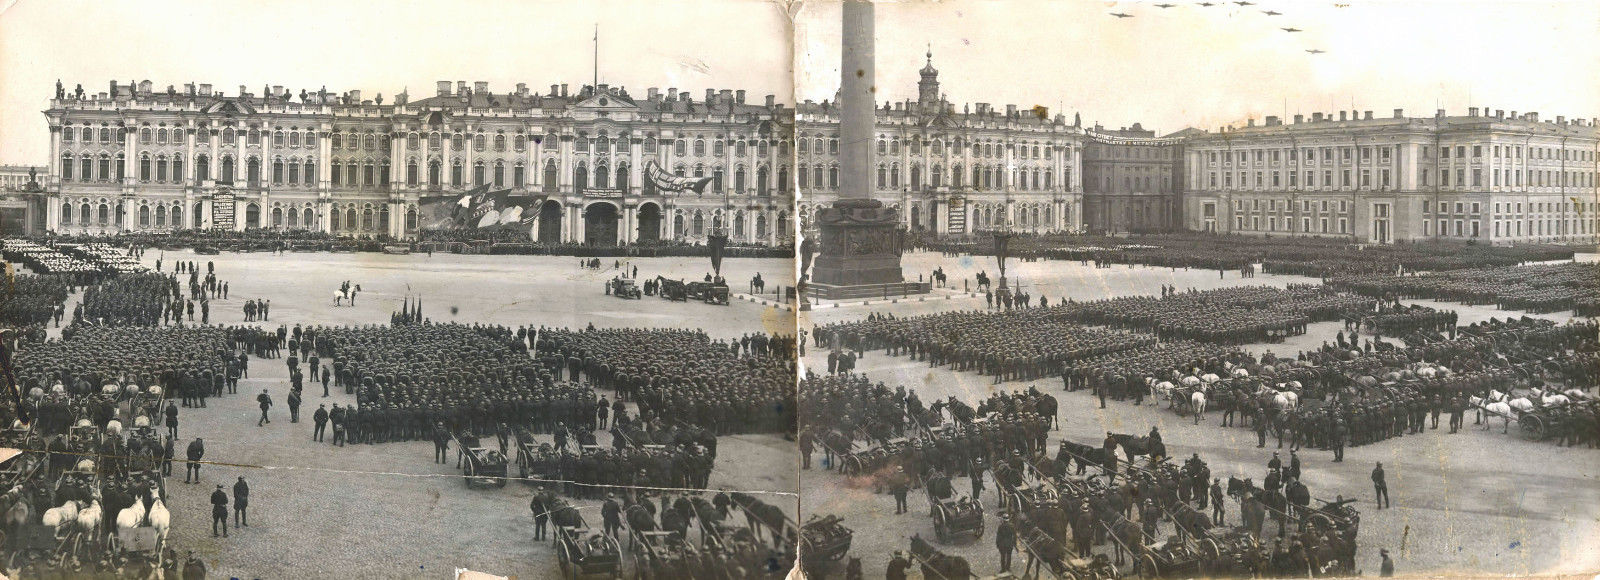 Organized columns of workers paraded in the streets of towns and cities, with music and political slogans relayed through loudspeakers. /  Panoramic view. May 1, 1930 in Leningrad (now St. Petersburg)